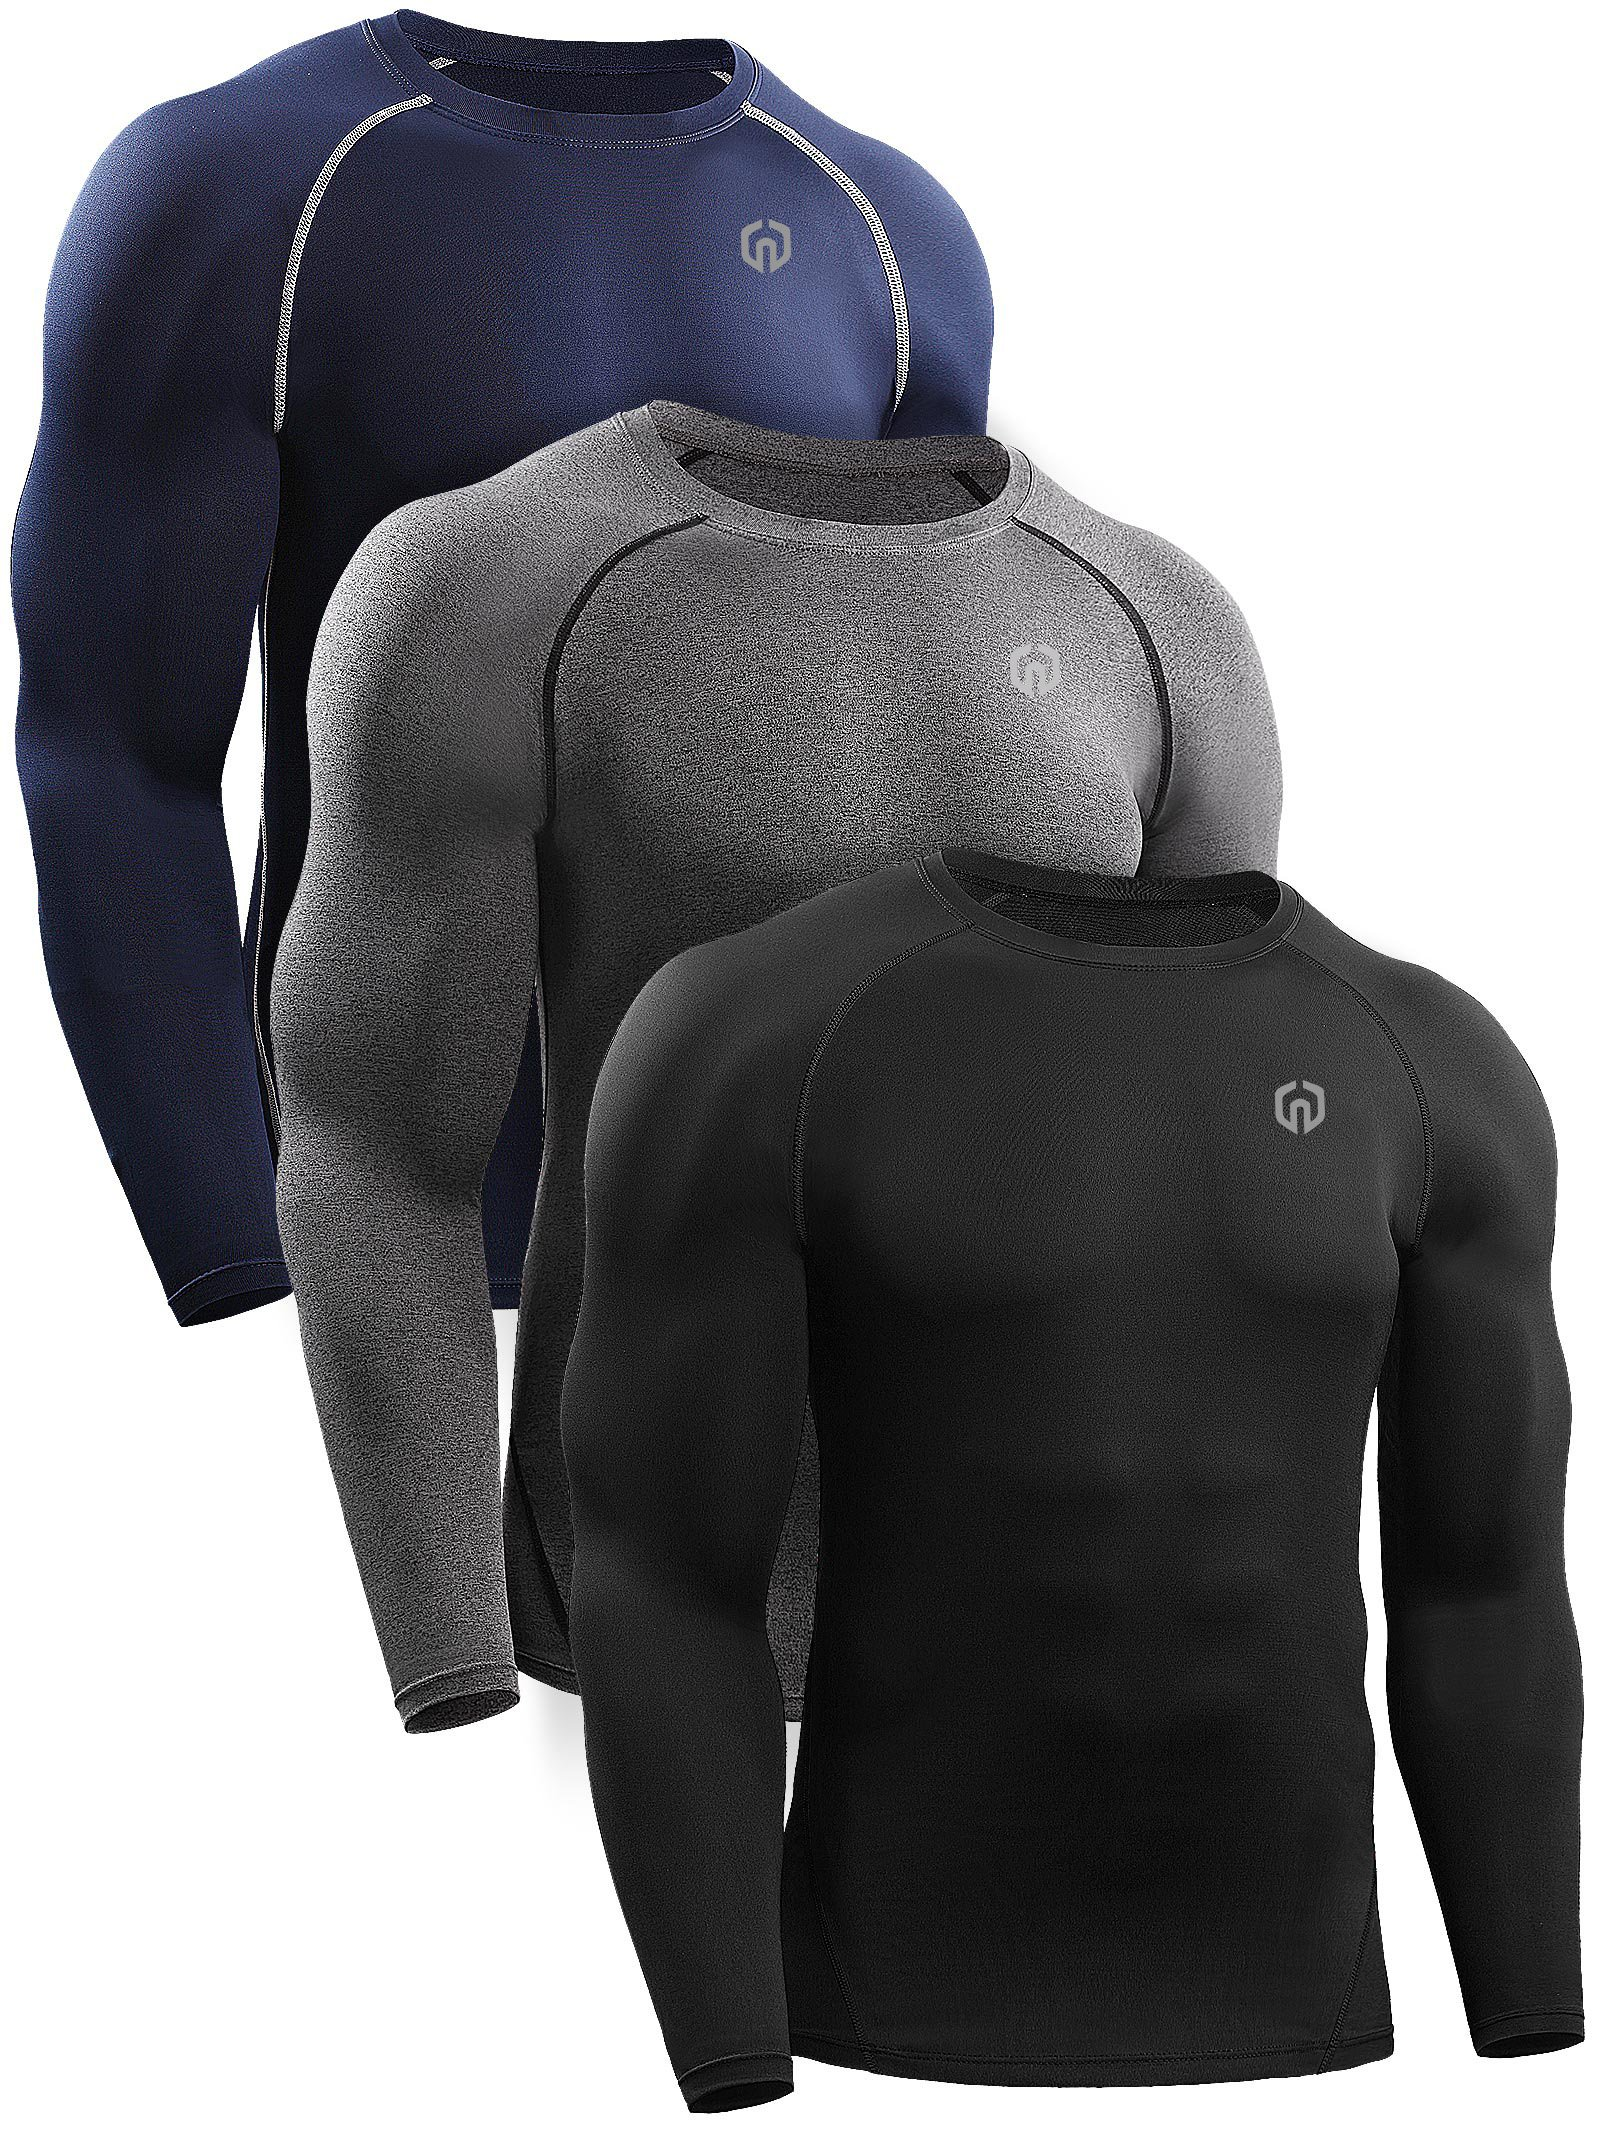 2b7281438148 Neleus Men s 3 Pack Athletic Compression Sport Running Long Sleeve T Shirt  product image